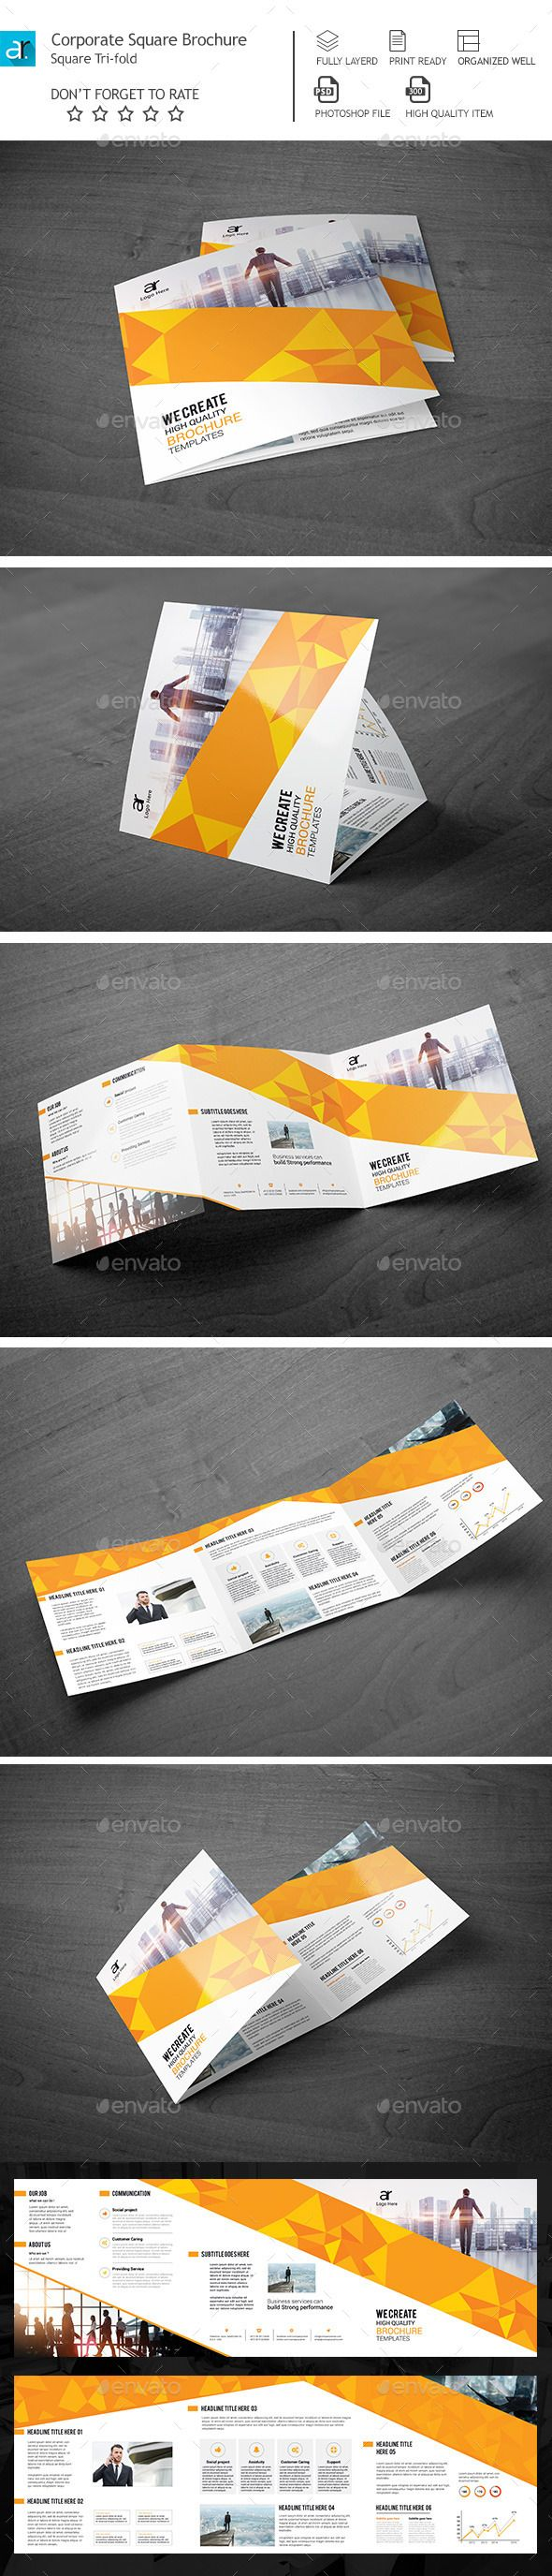 145 best Leaflet images on Pinterest | Brochure design, Flyer design ...